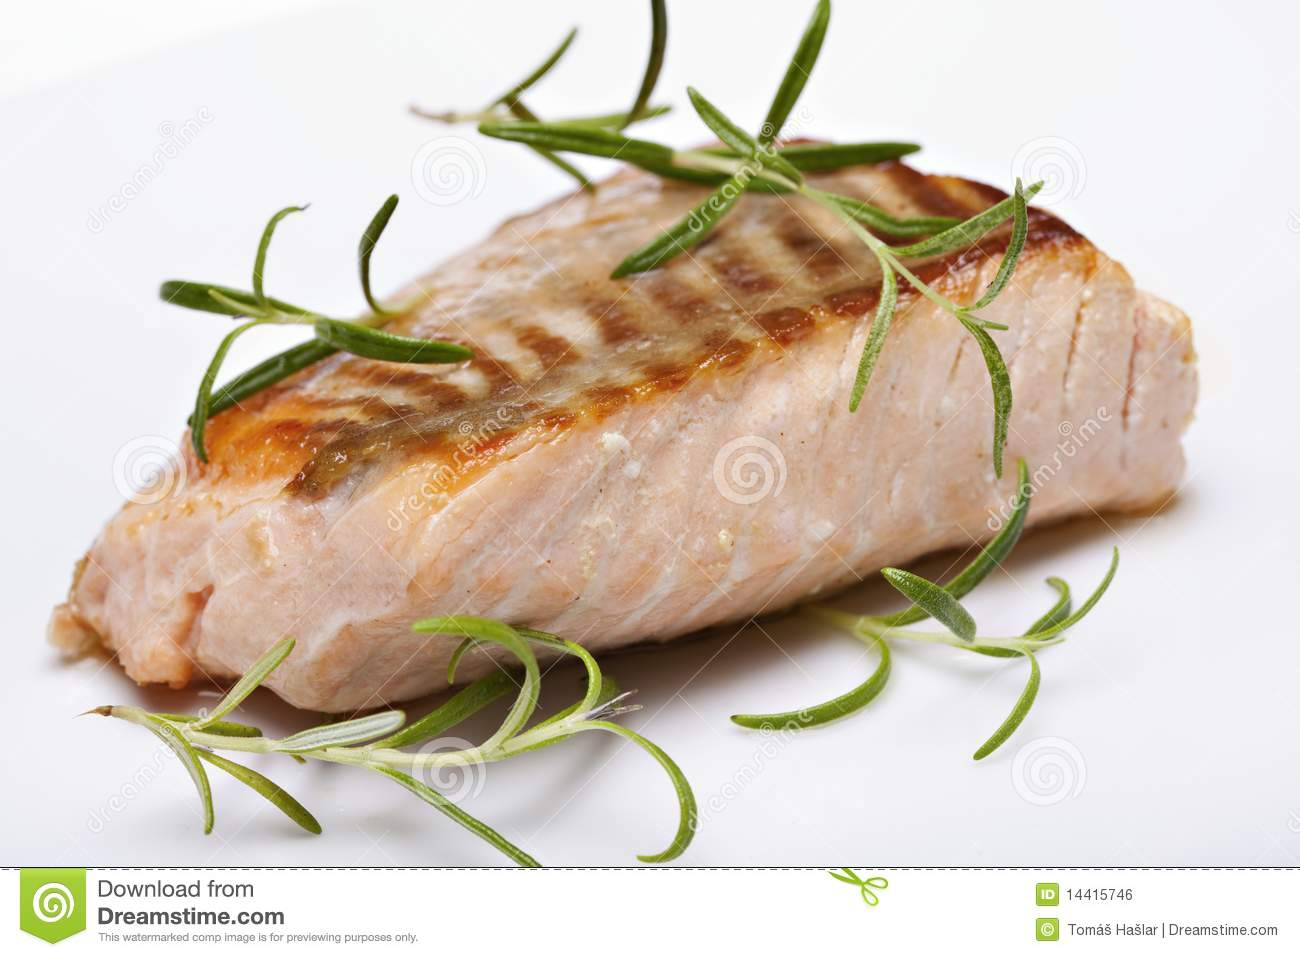 Grilled Fish, Salmon Steak Royalty Free Stock Image - Image: 14415746